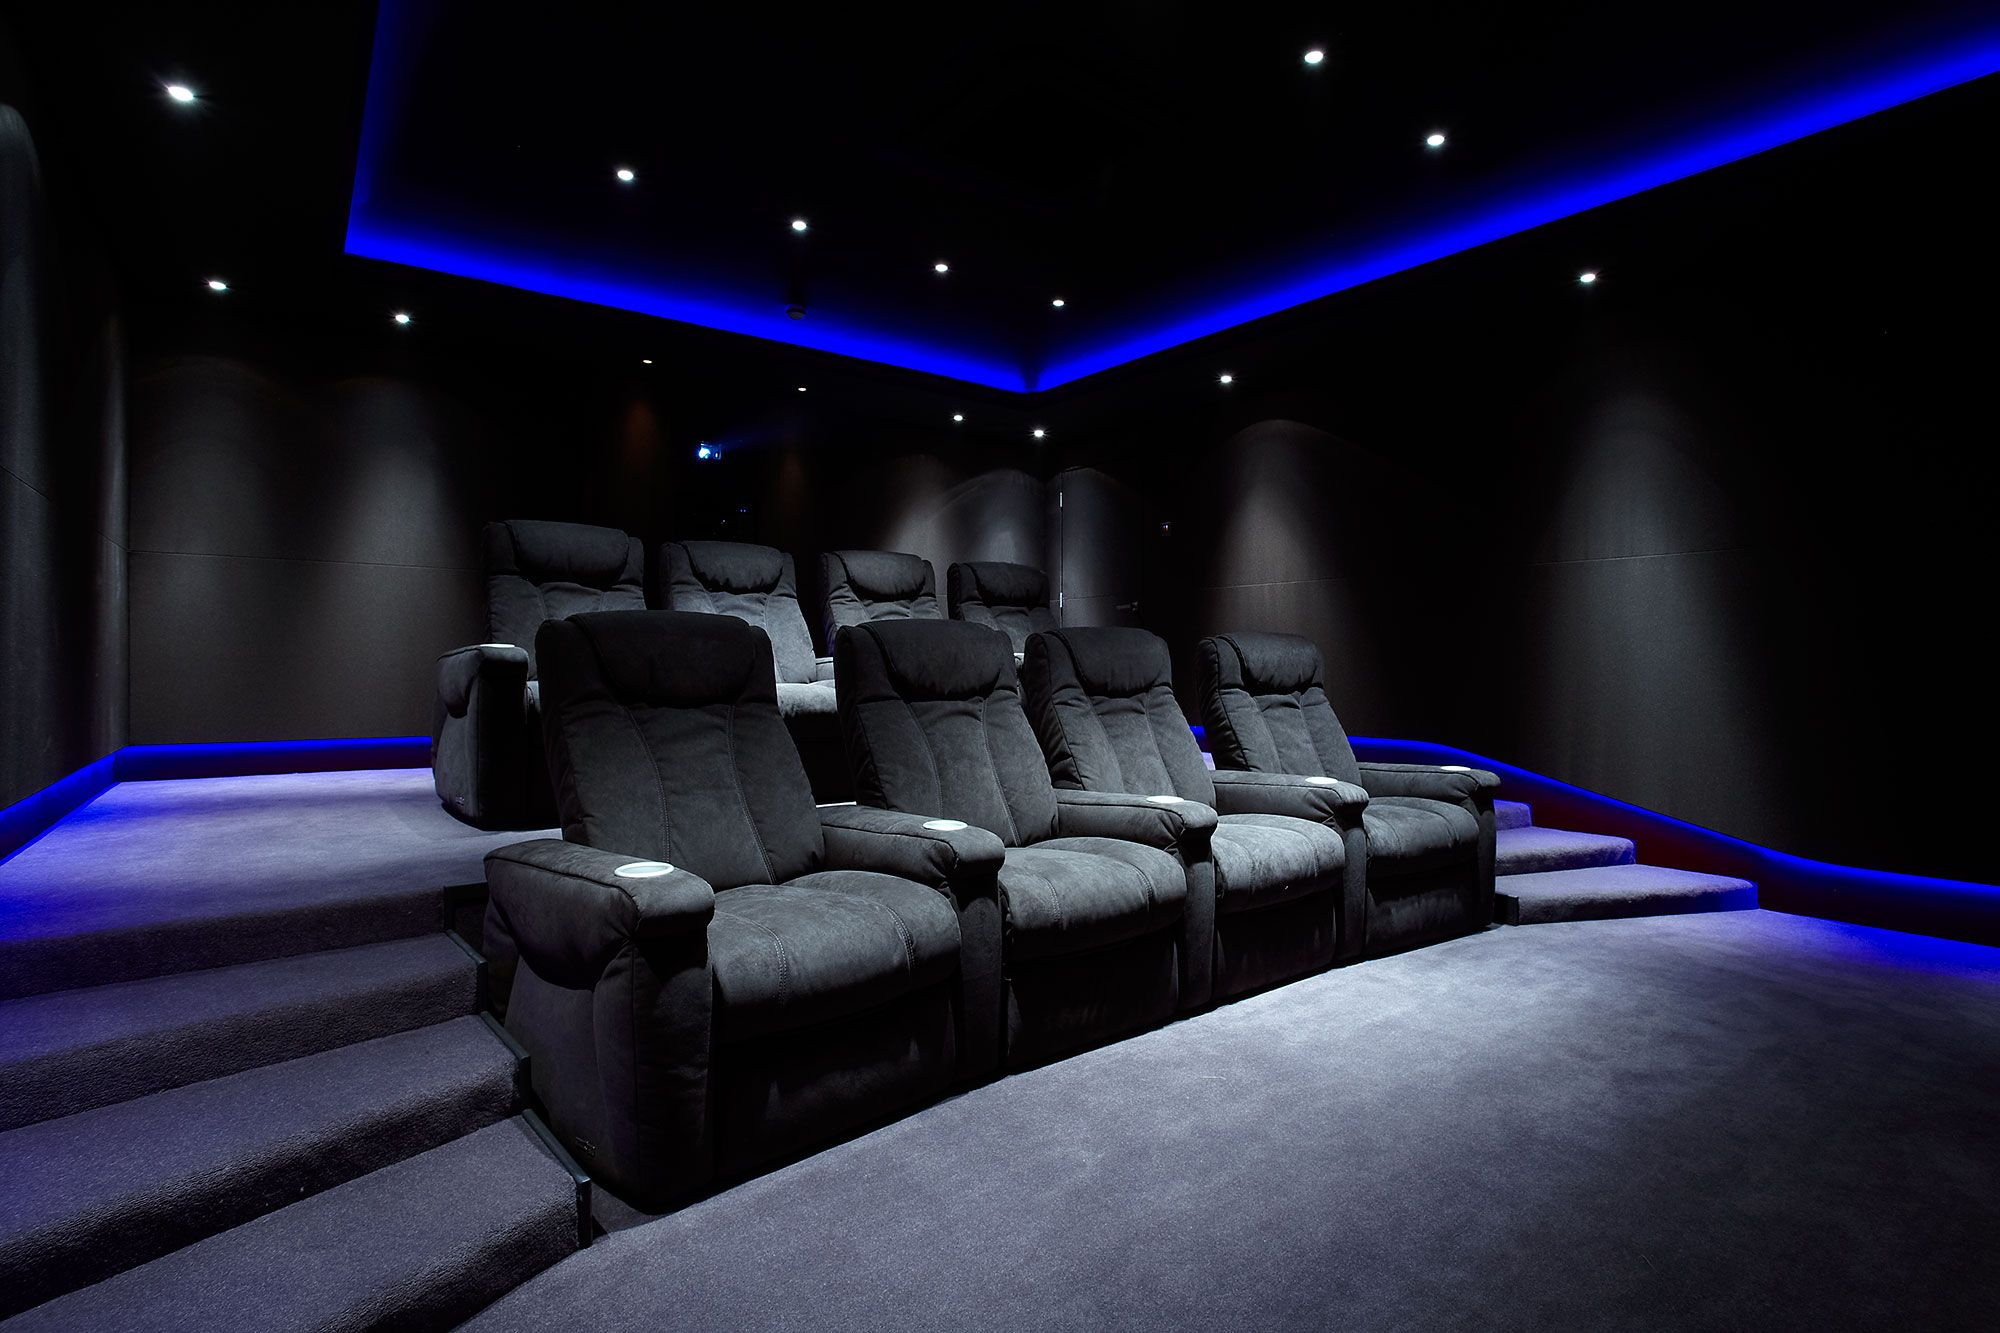 More Ideas Below Hometheater Basementideas Diy Home Theater Decorations Ideas Basement Home Theater Home Cinema Room Home Theater Rooms Home Theater Seating